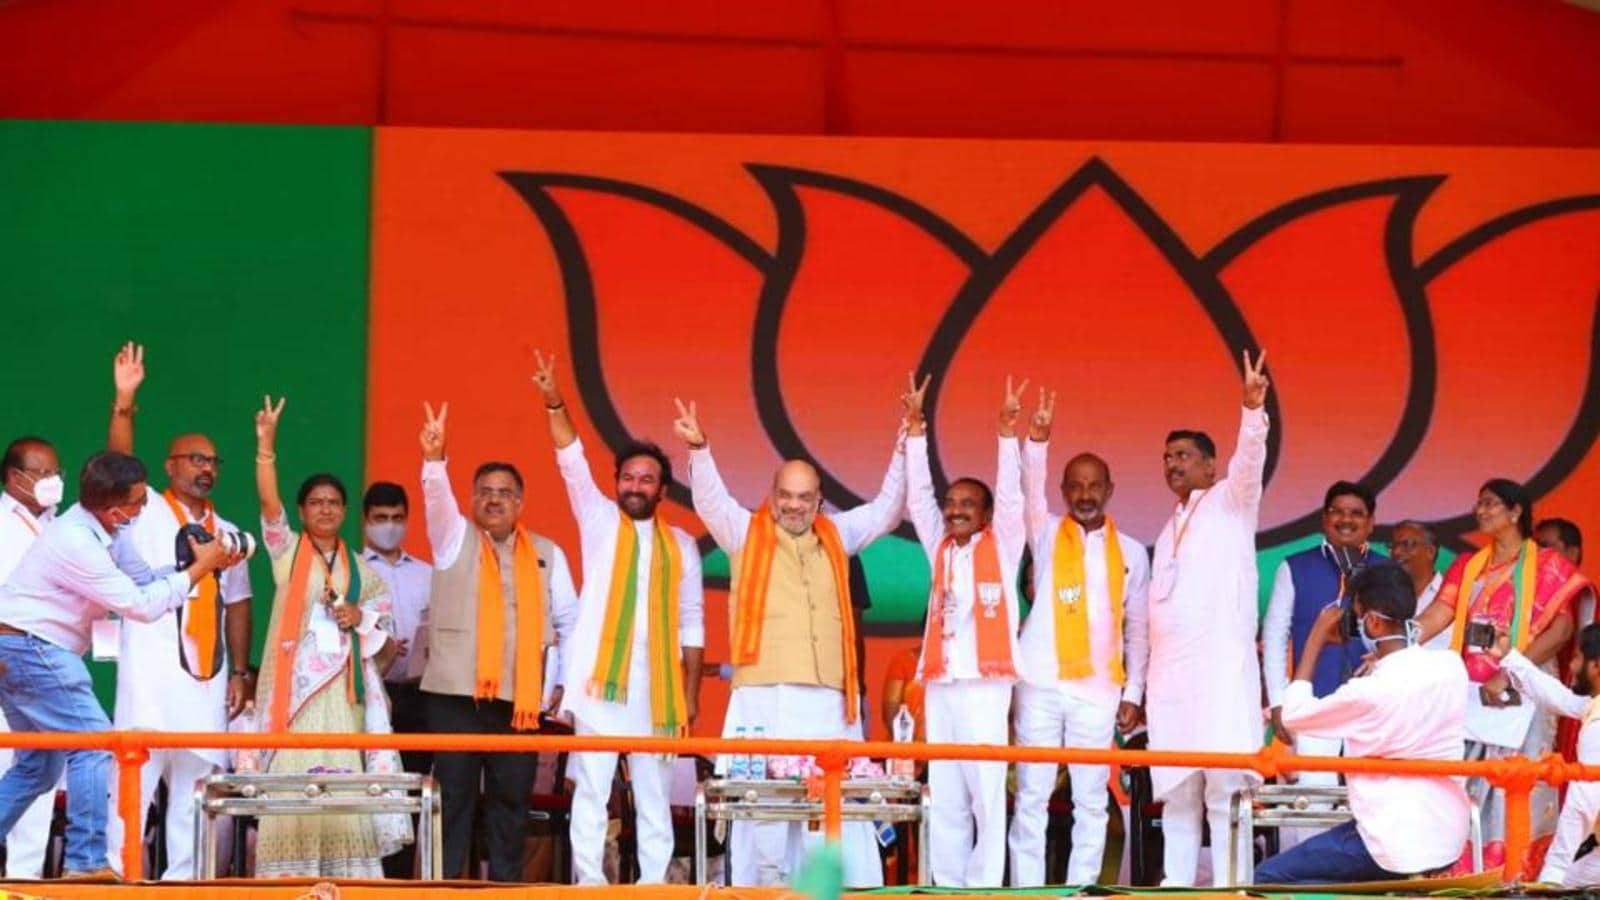 Time to liberate people of Telangana from TRS, says Amit Shah   Latest News  India - Hindustan Times